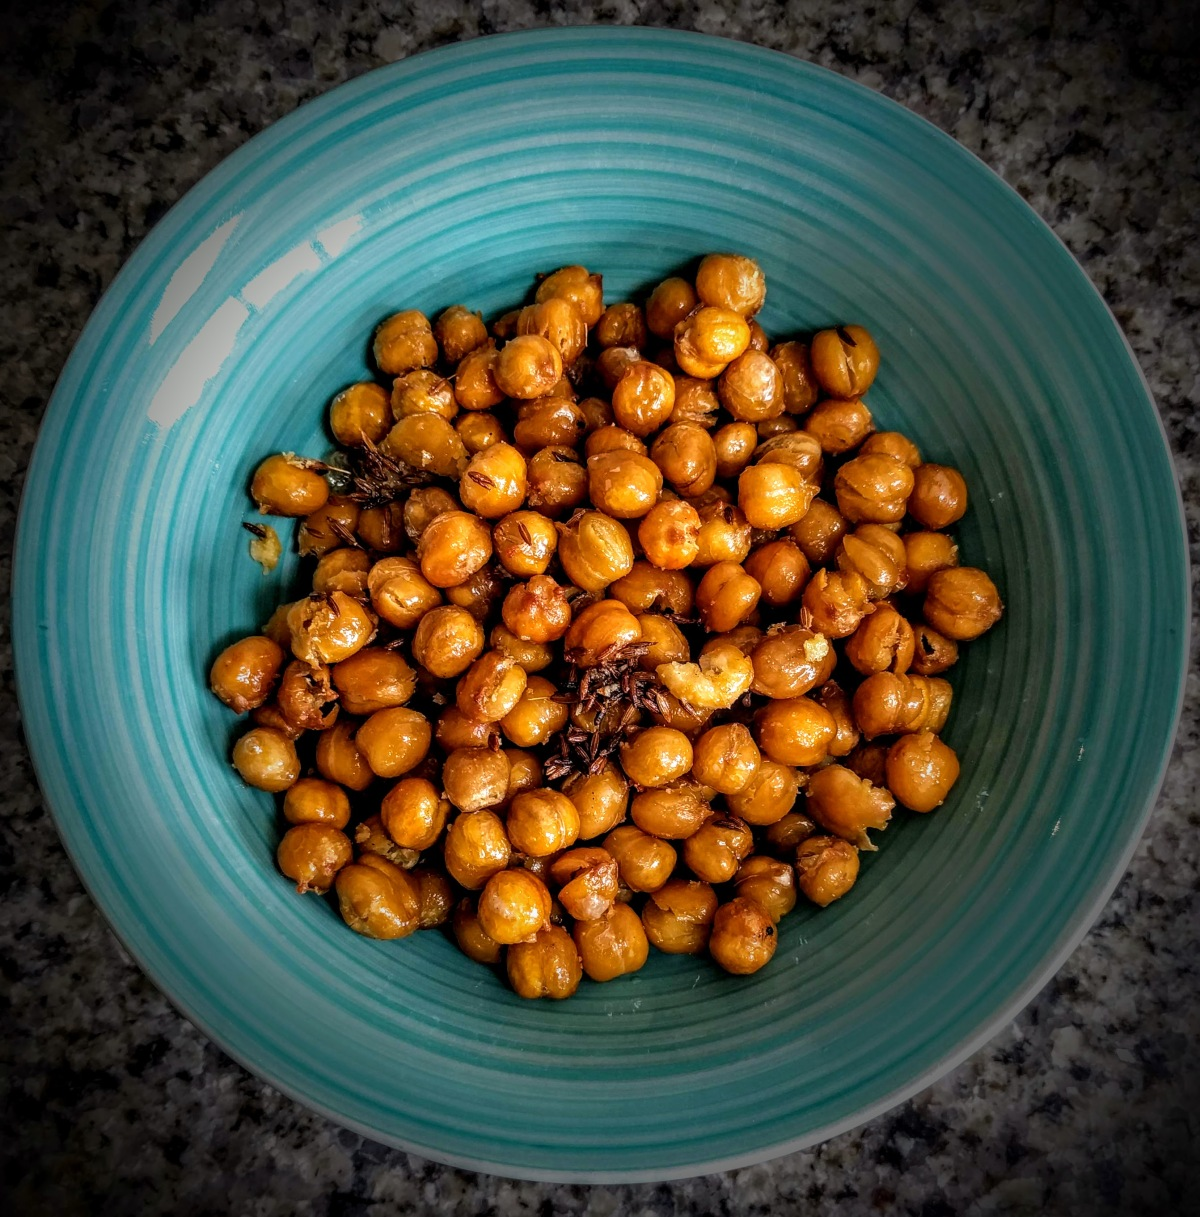 Roasted Chickpea with Cumin Seeds 7